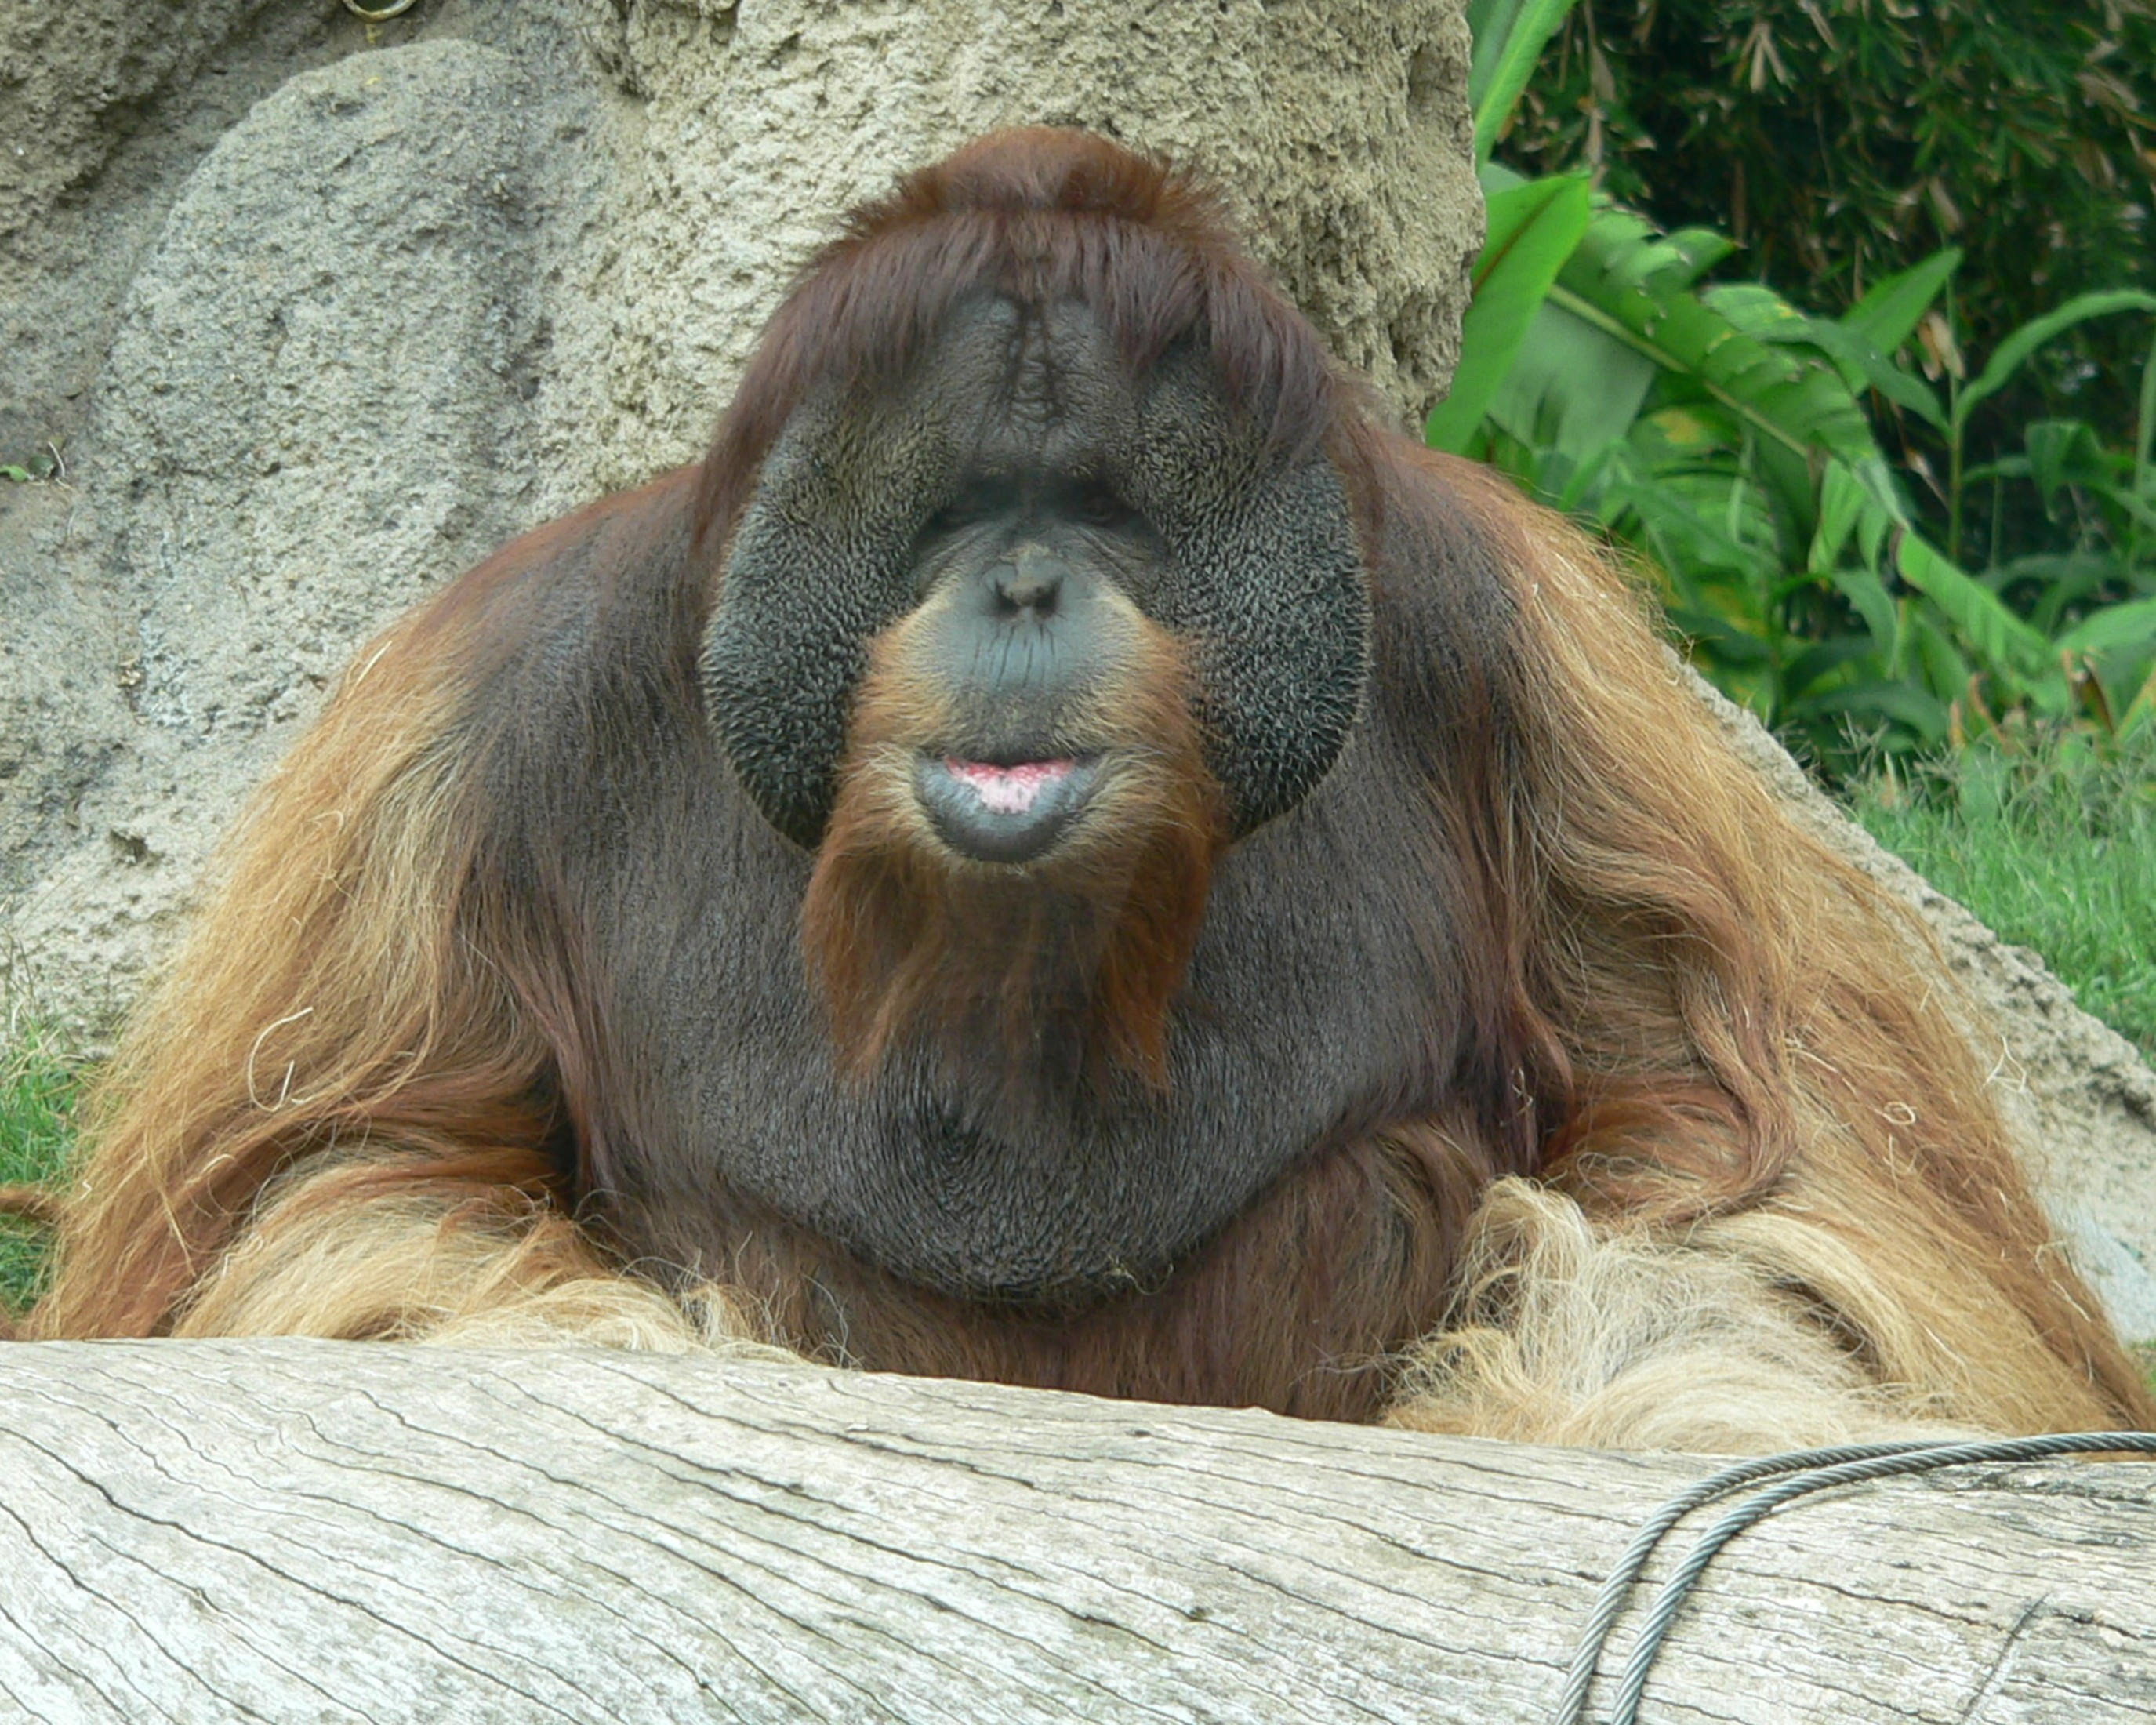 great apes used for entertainment